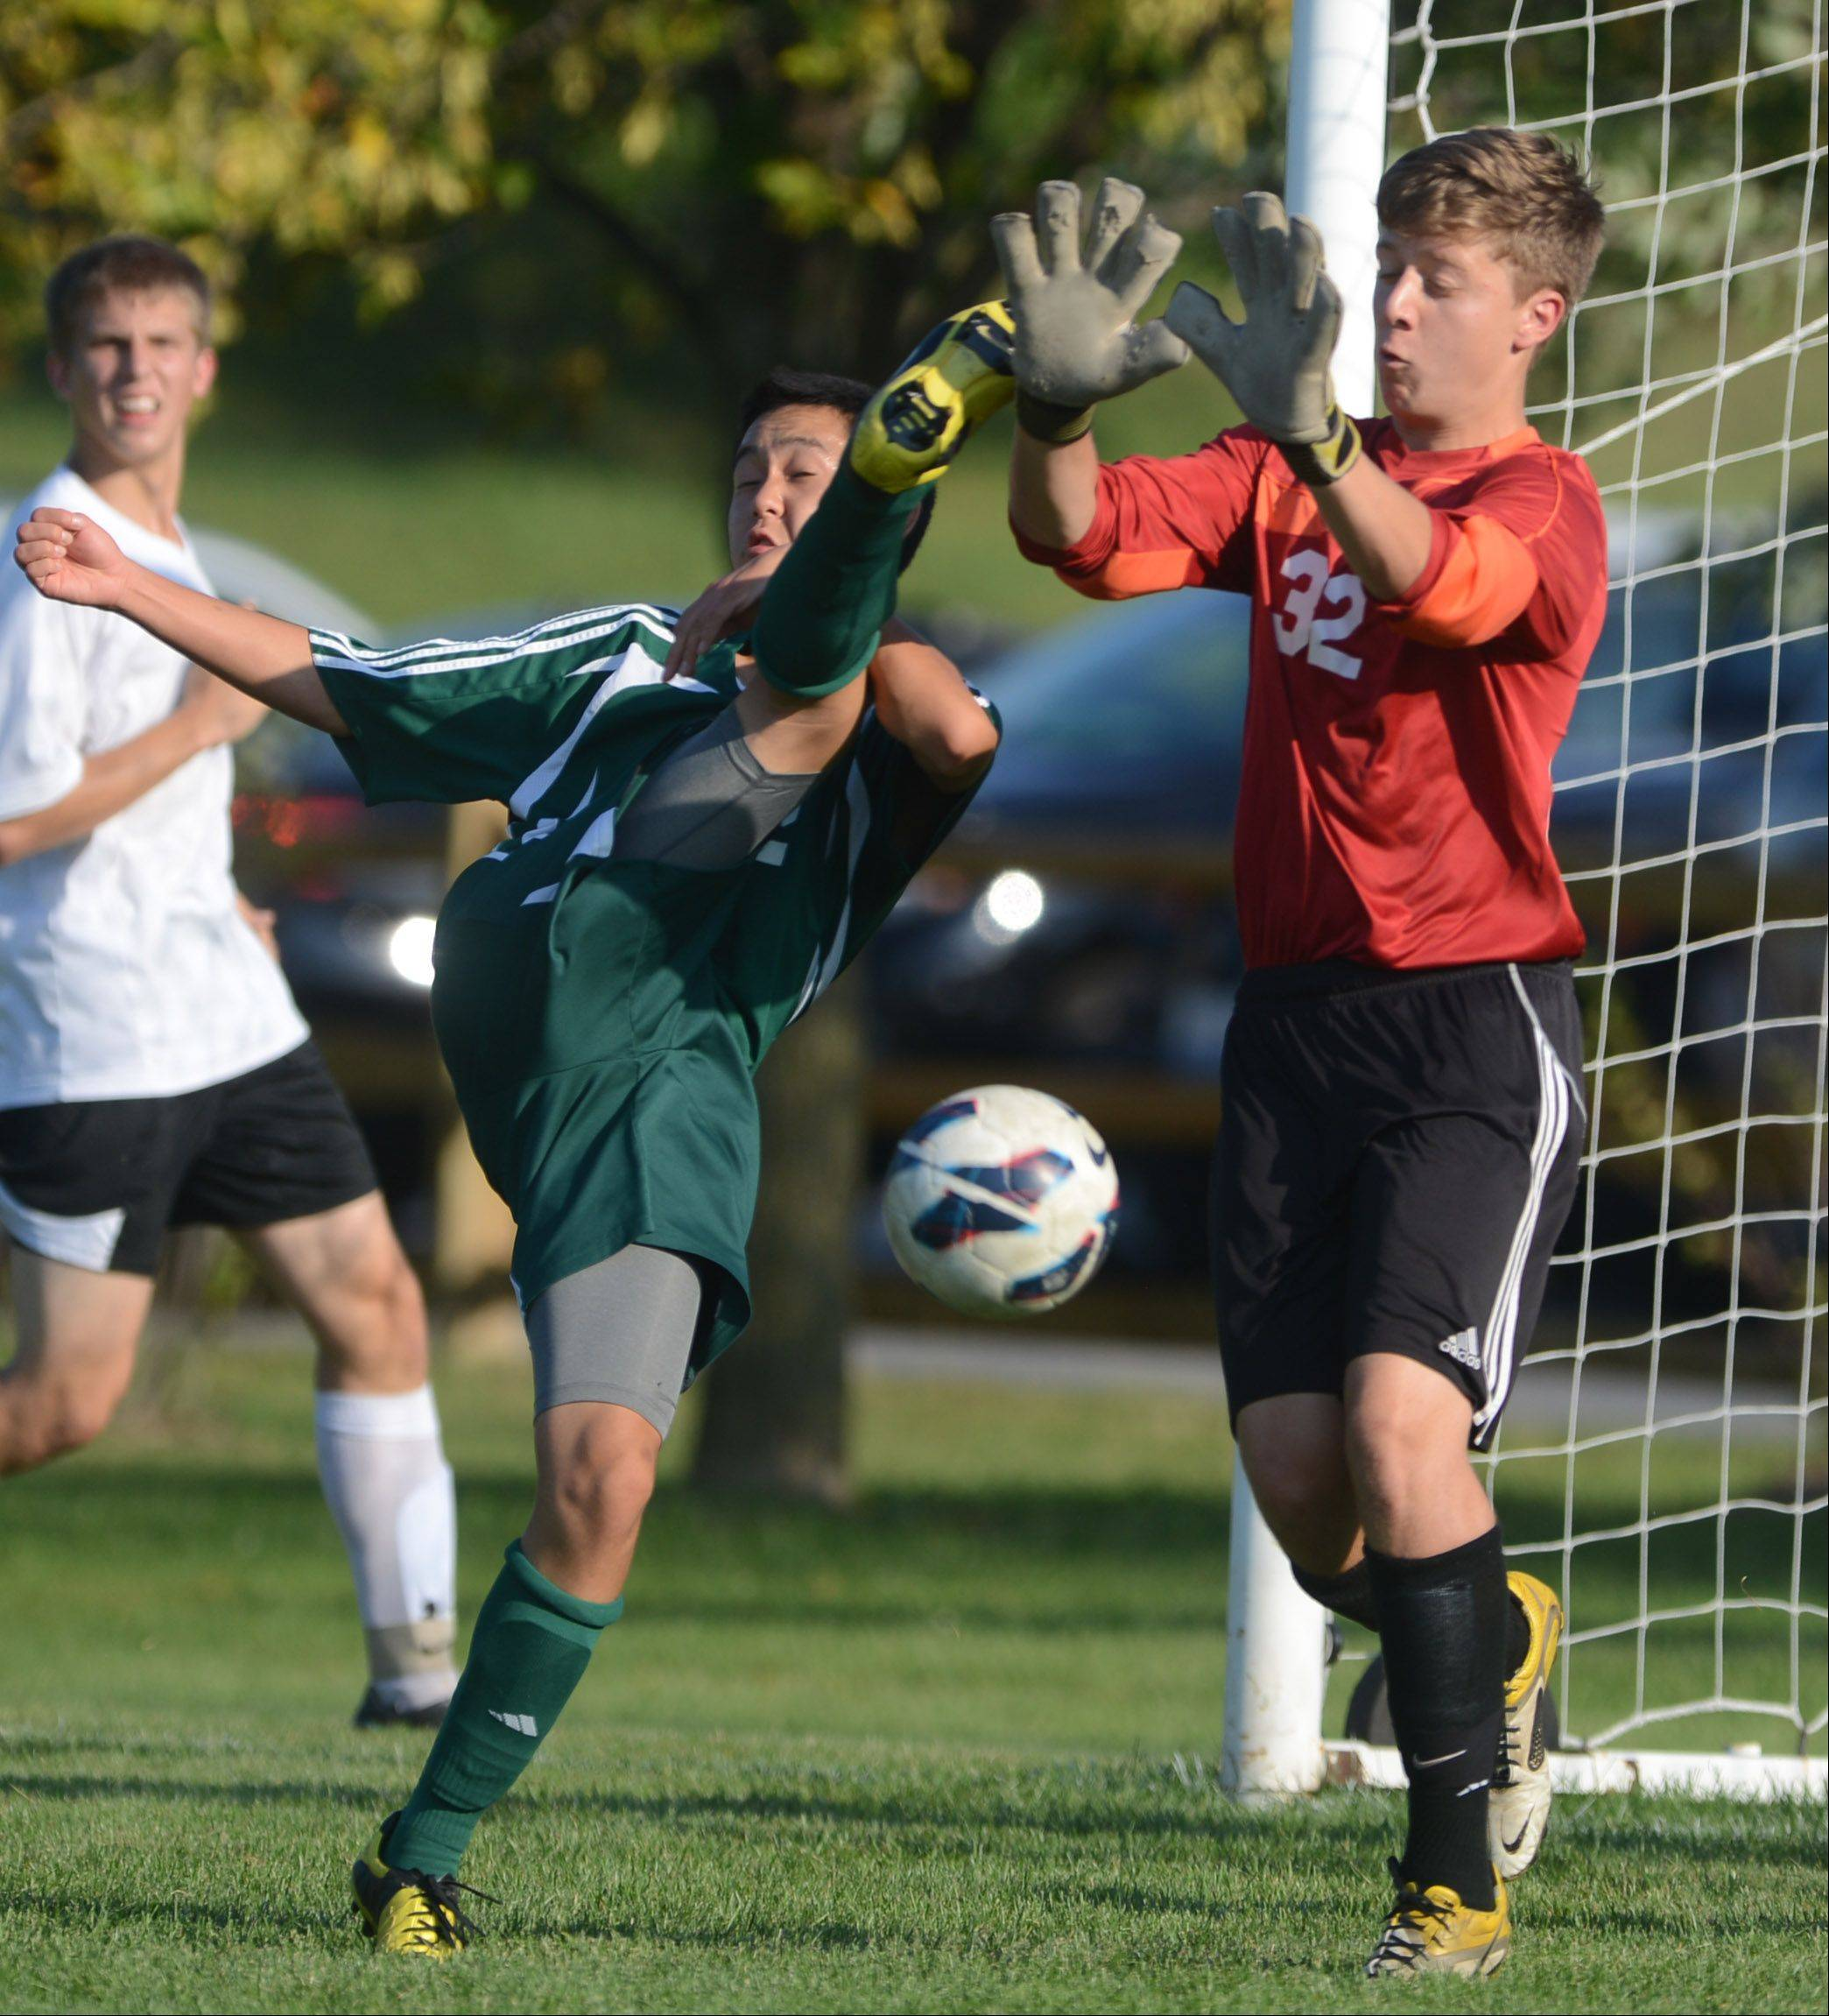 Libertyville goalkeeper Sam Muchmore, right, blocks a kick by Stevenson's Dean Lim during Tuesday's soccer game in Libertville.